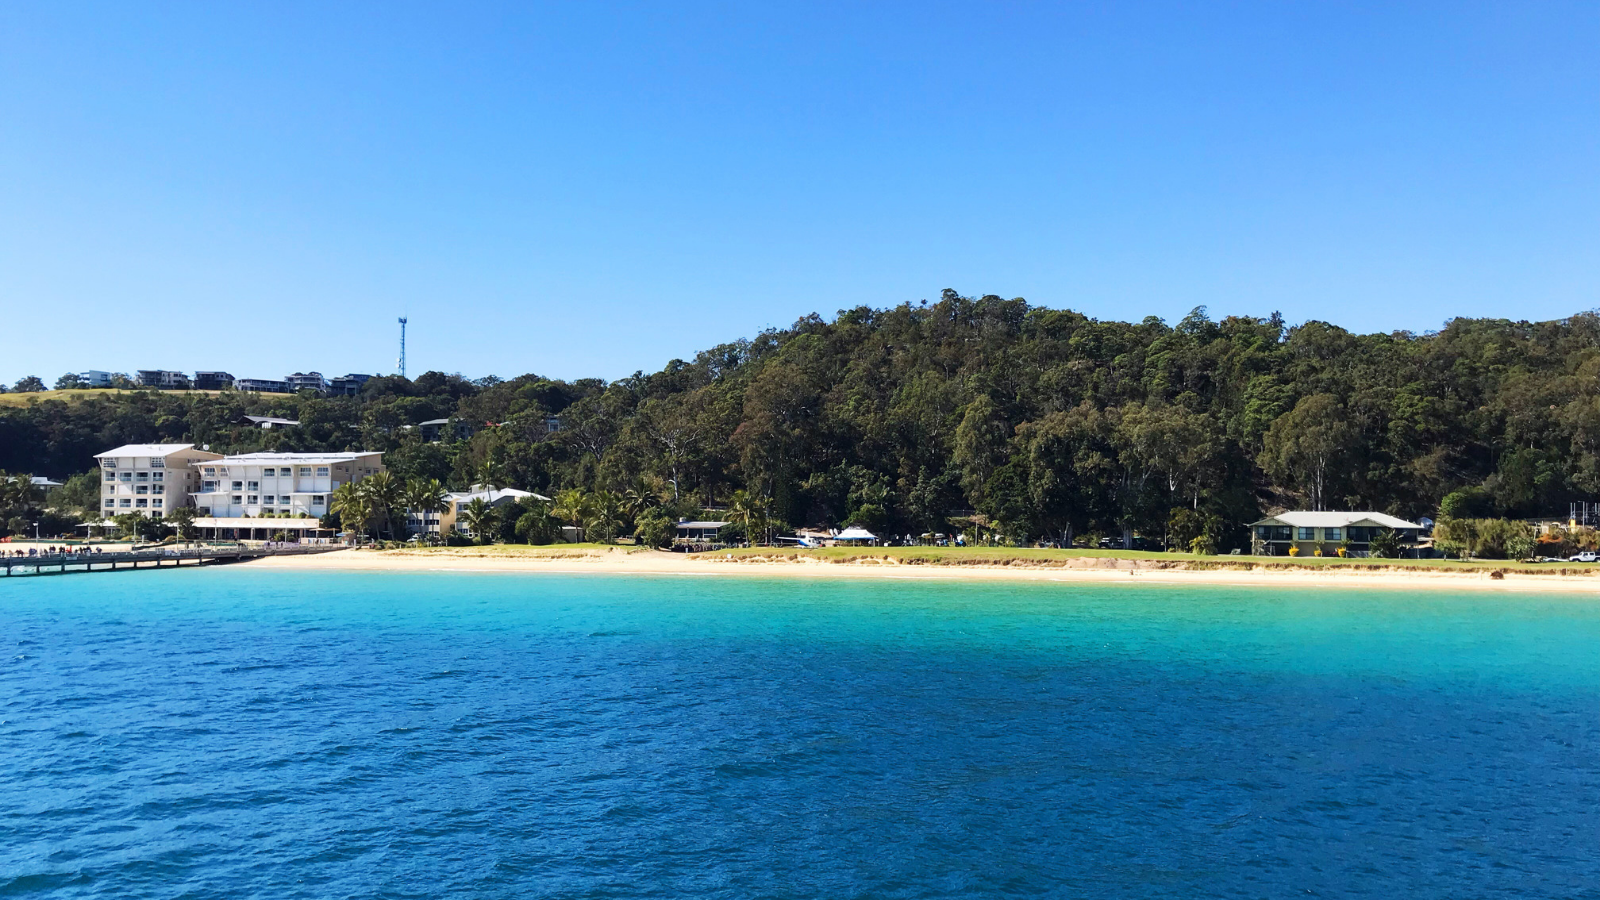 Our Tangalooma Getaway